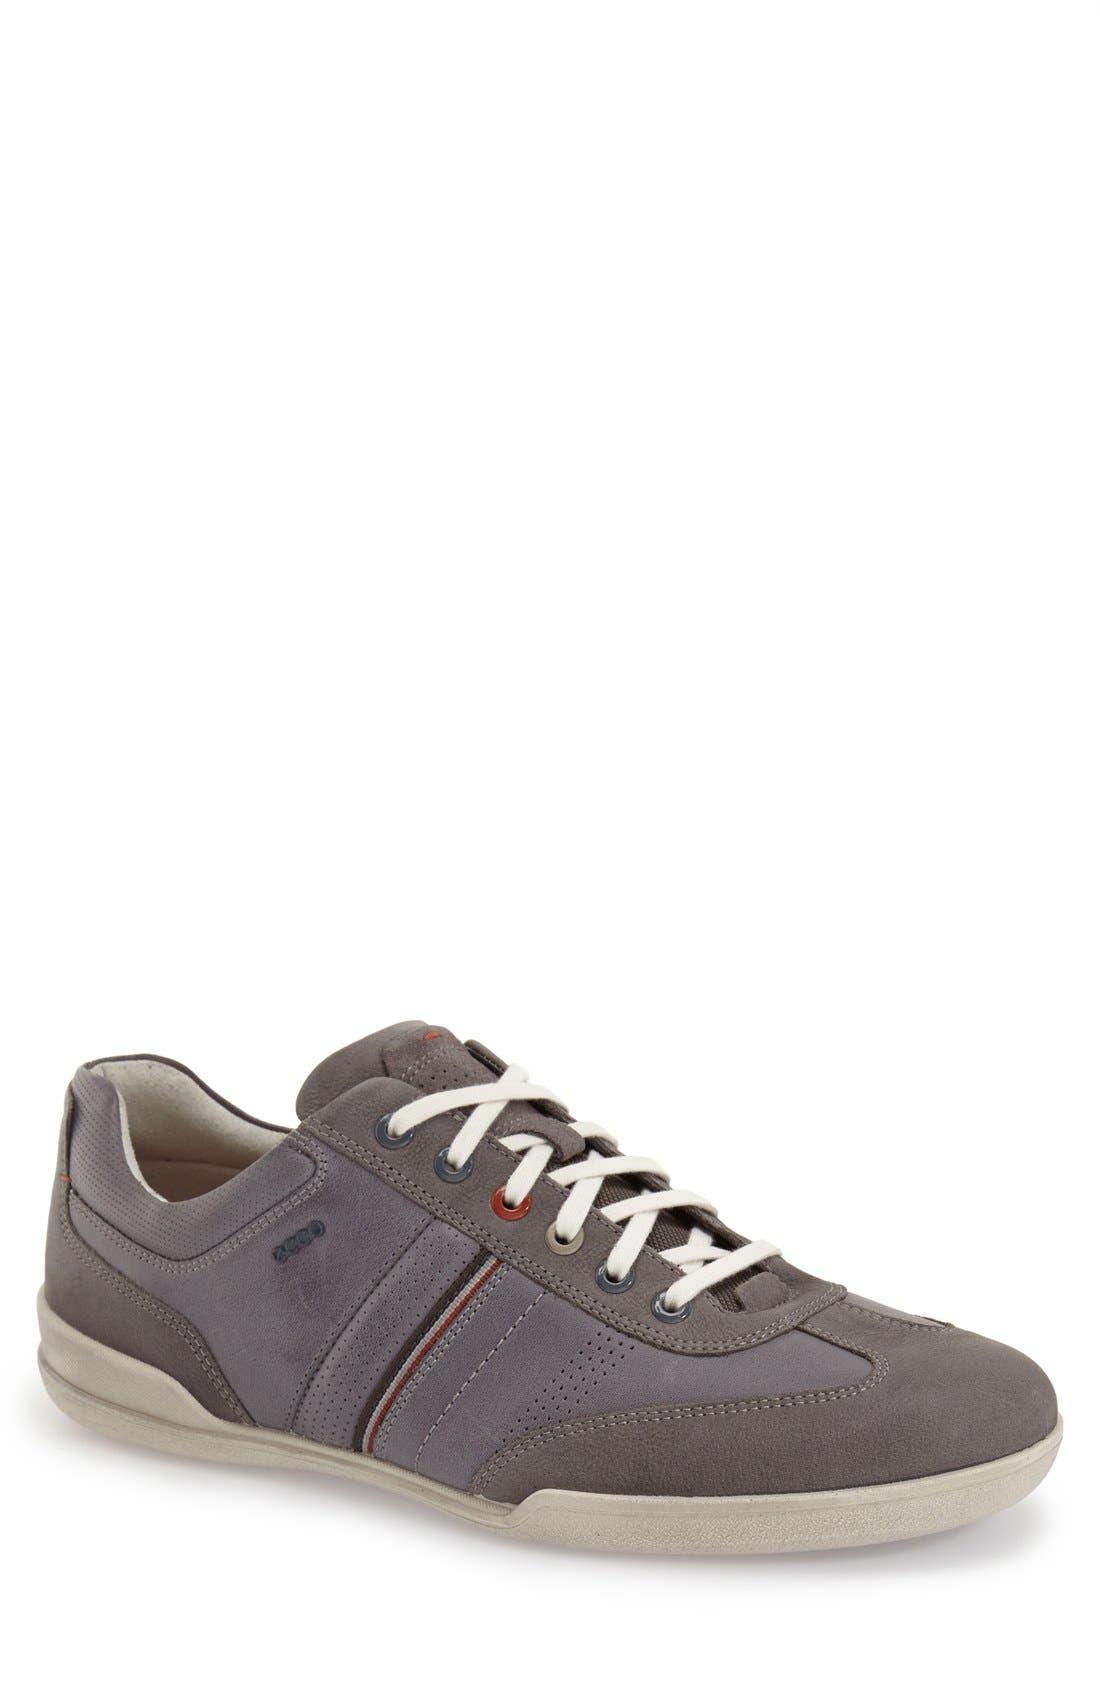 'Enrico' Sneaker,                         Main,                         color, Moonless Leather